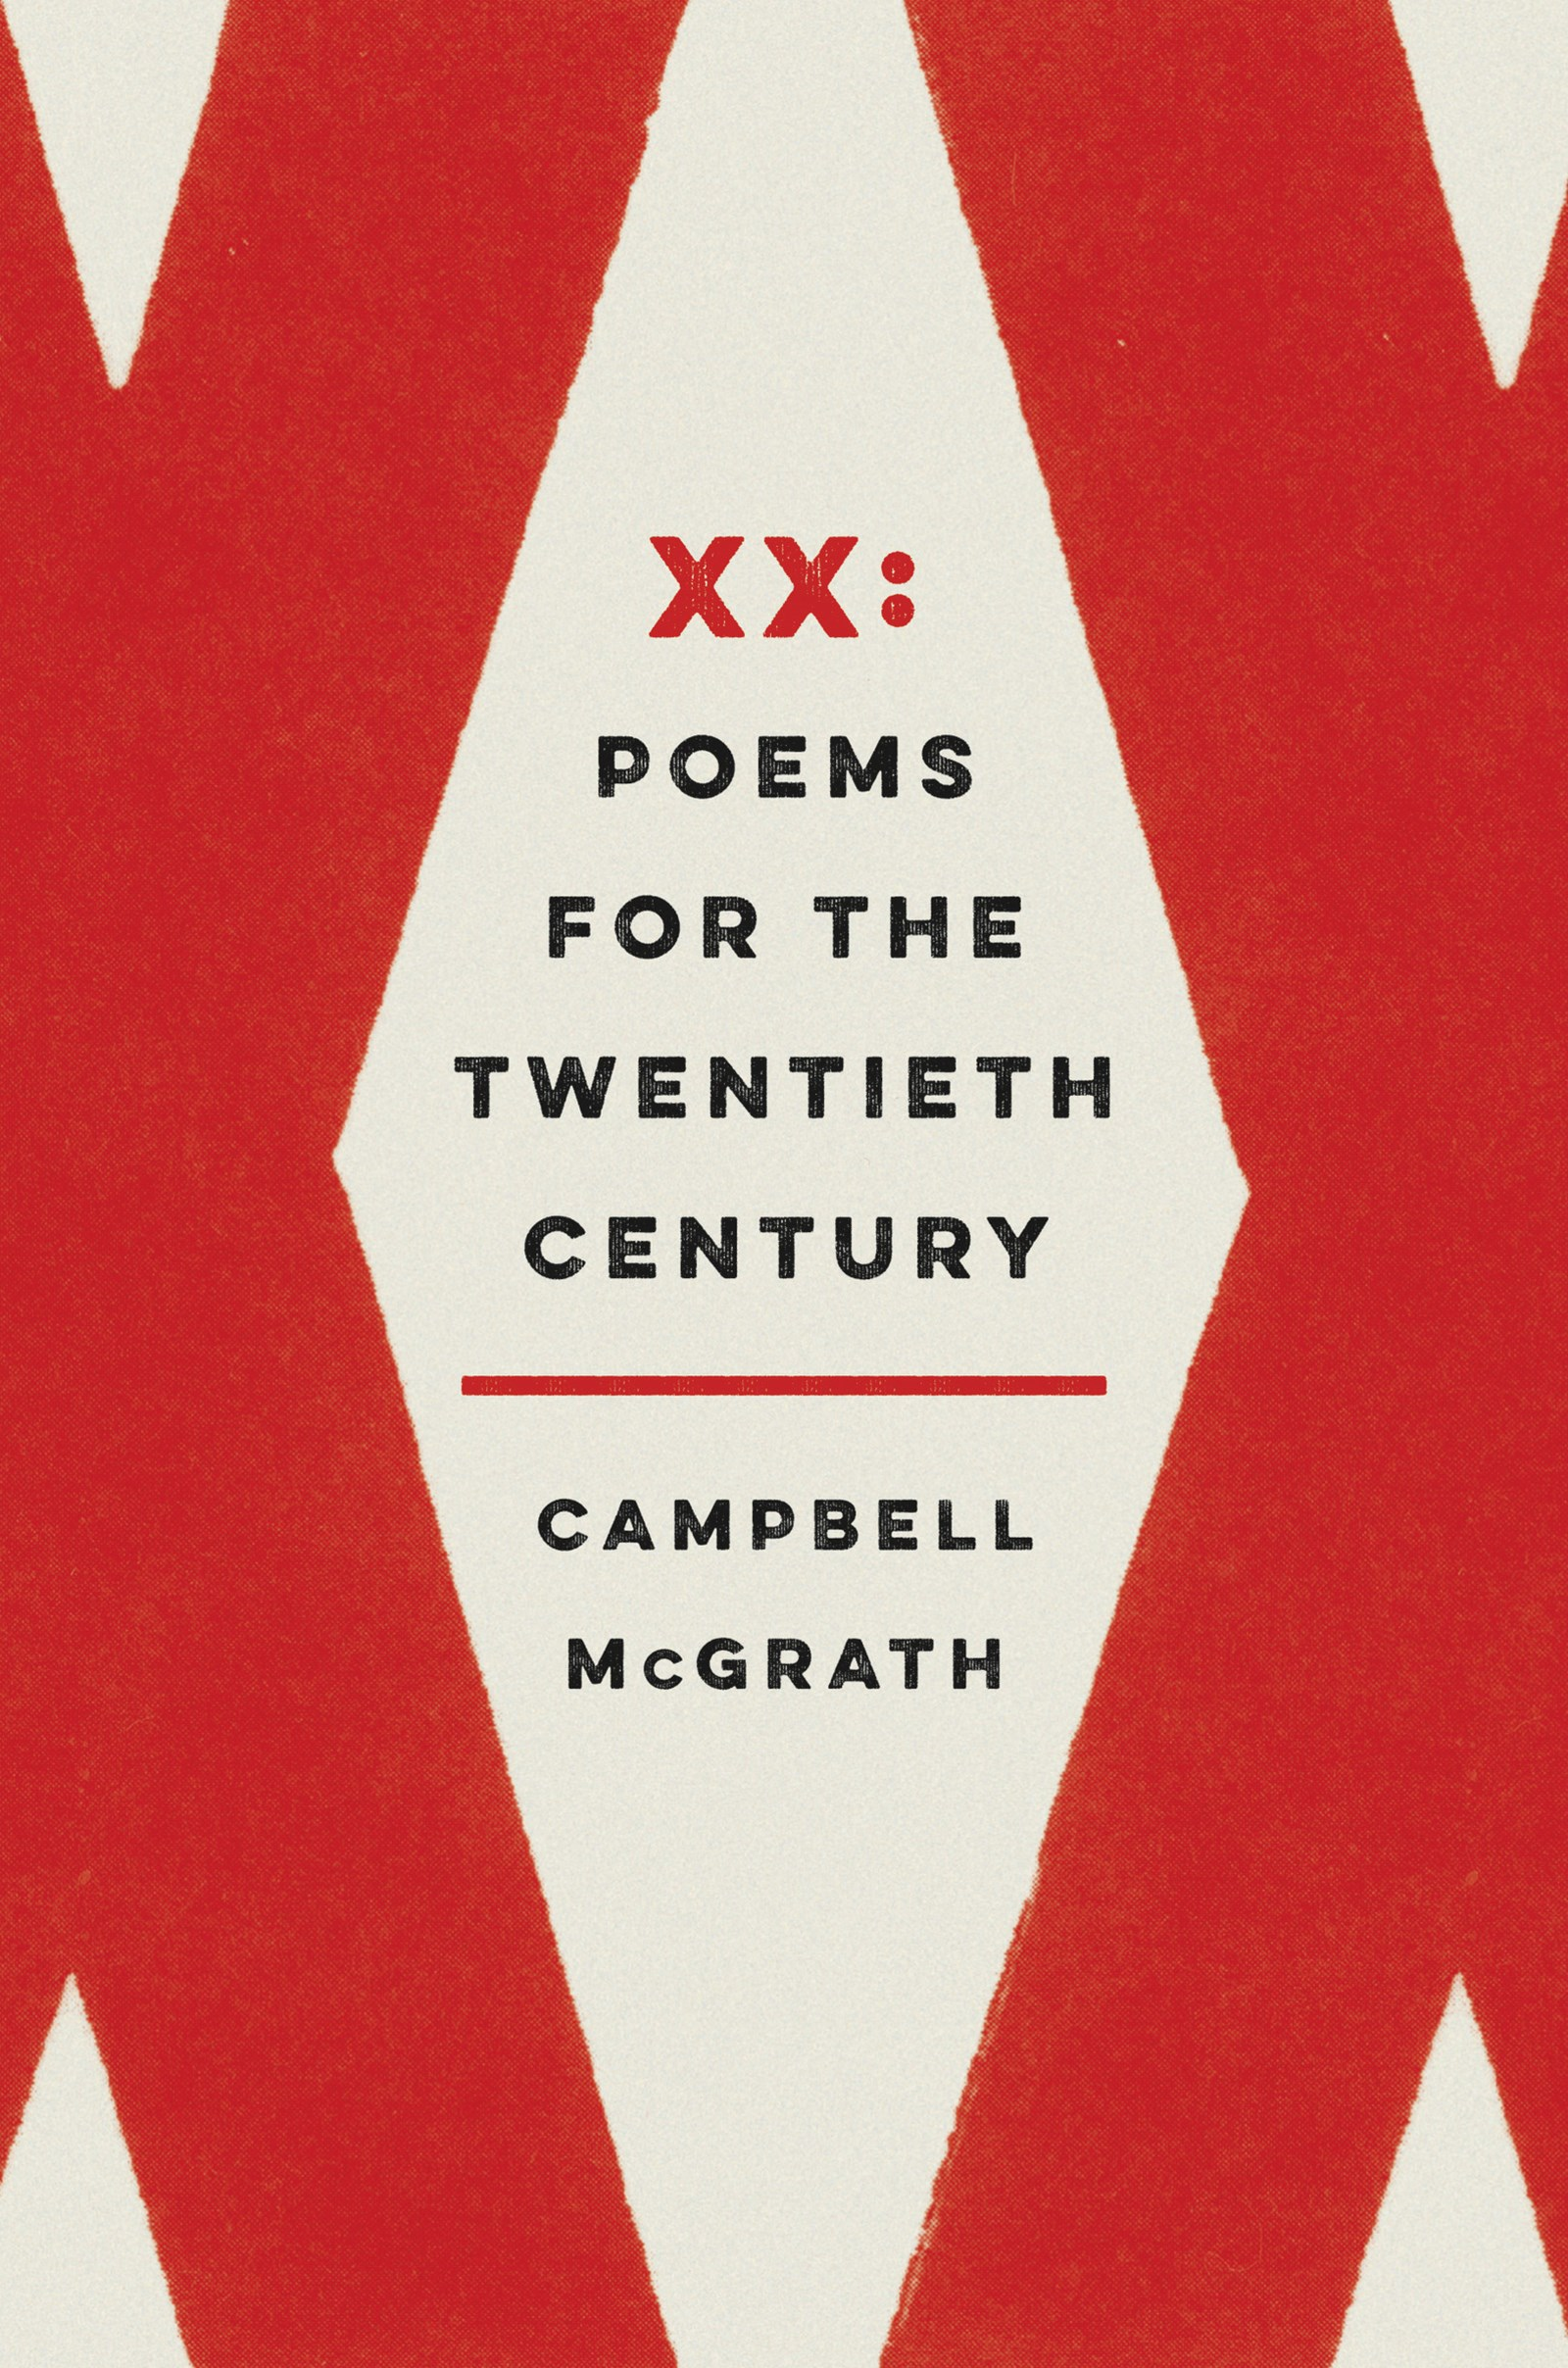 XX: Poems for the Twentieth Century